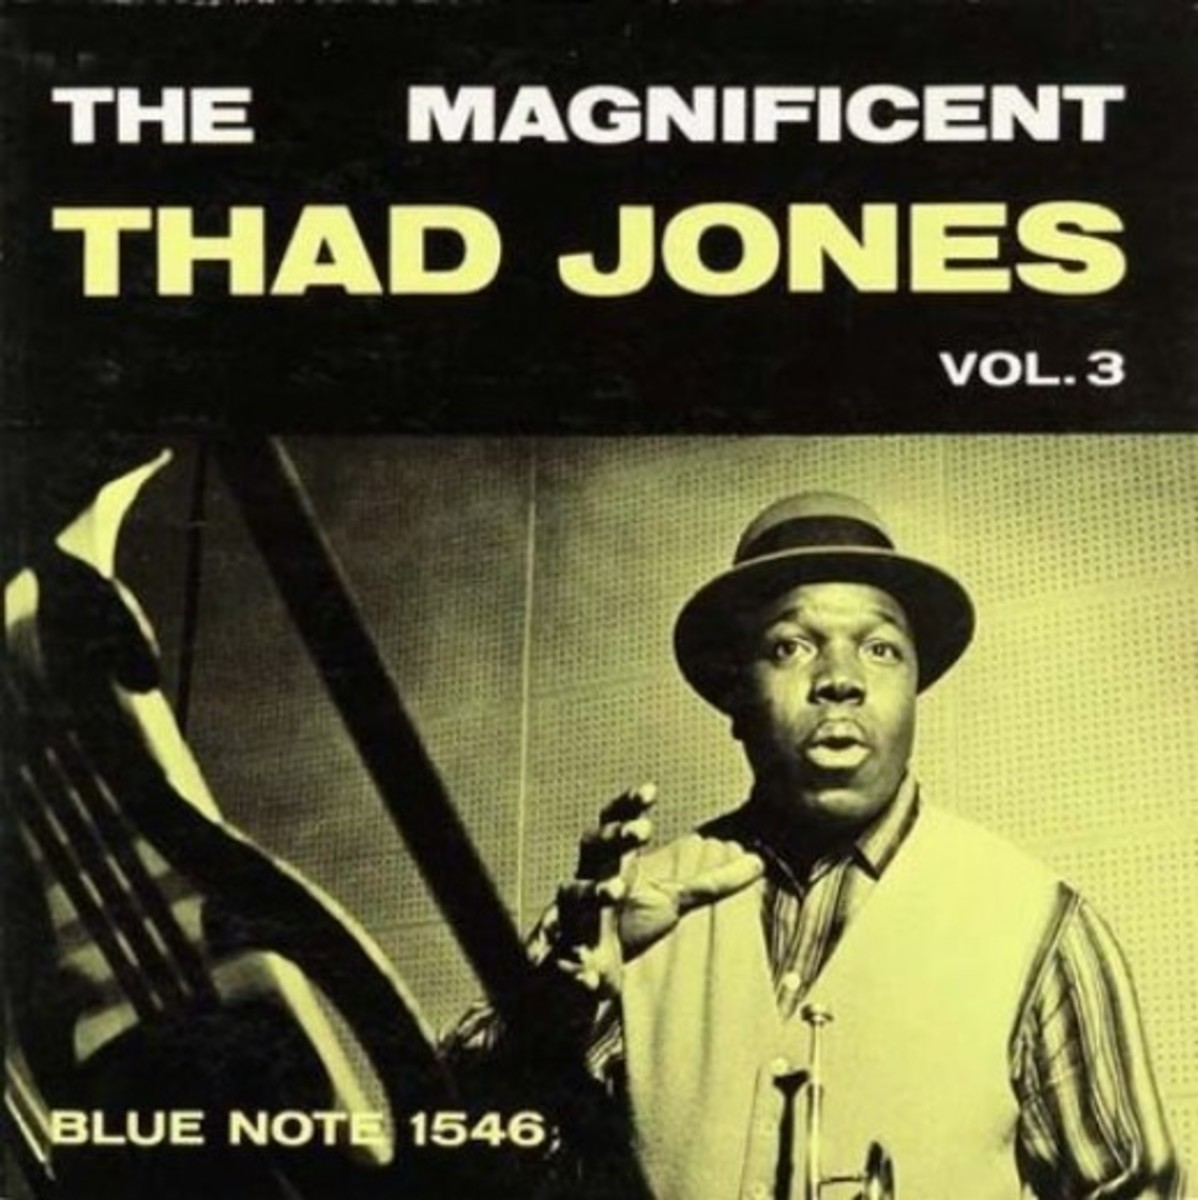 "Thad Jones ""The Magnificent Thad Jones, vol. 3"" Blue Note Records BLP 1546 12"" LP Vinyl Record (1957) Album Cover Design by Reid Miles Photo by Francis Wolff"